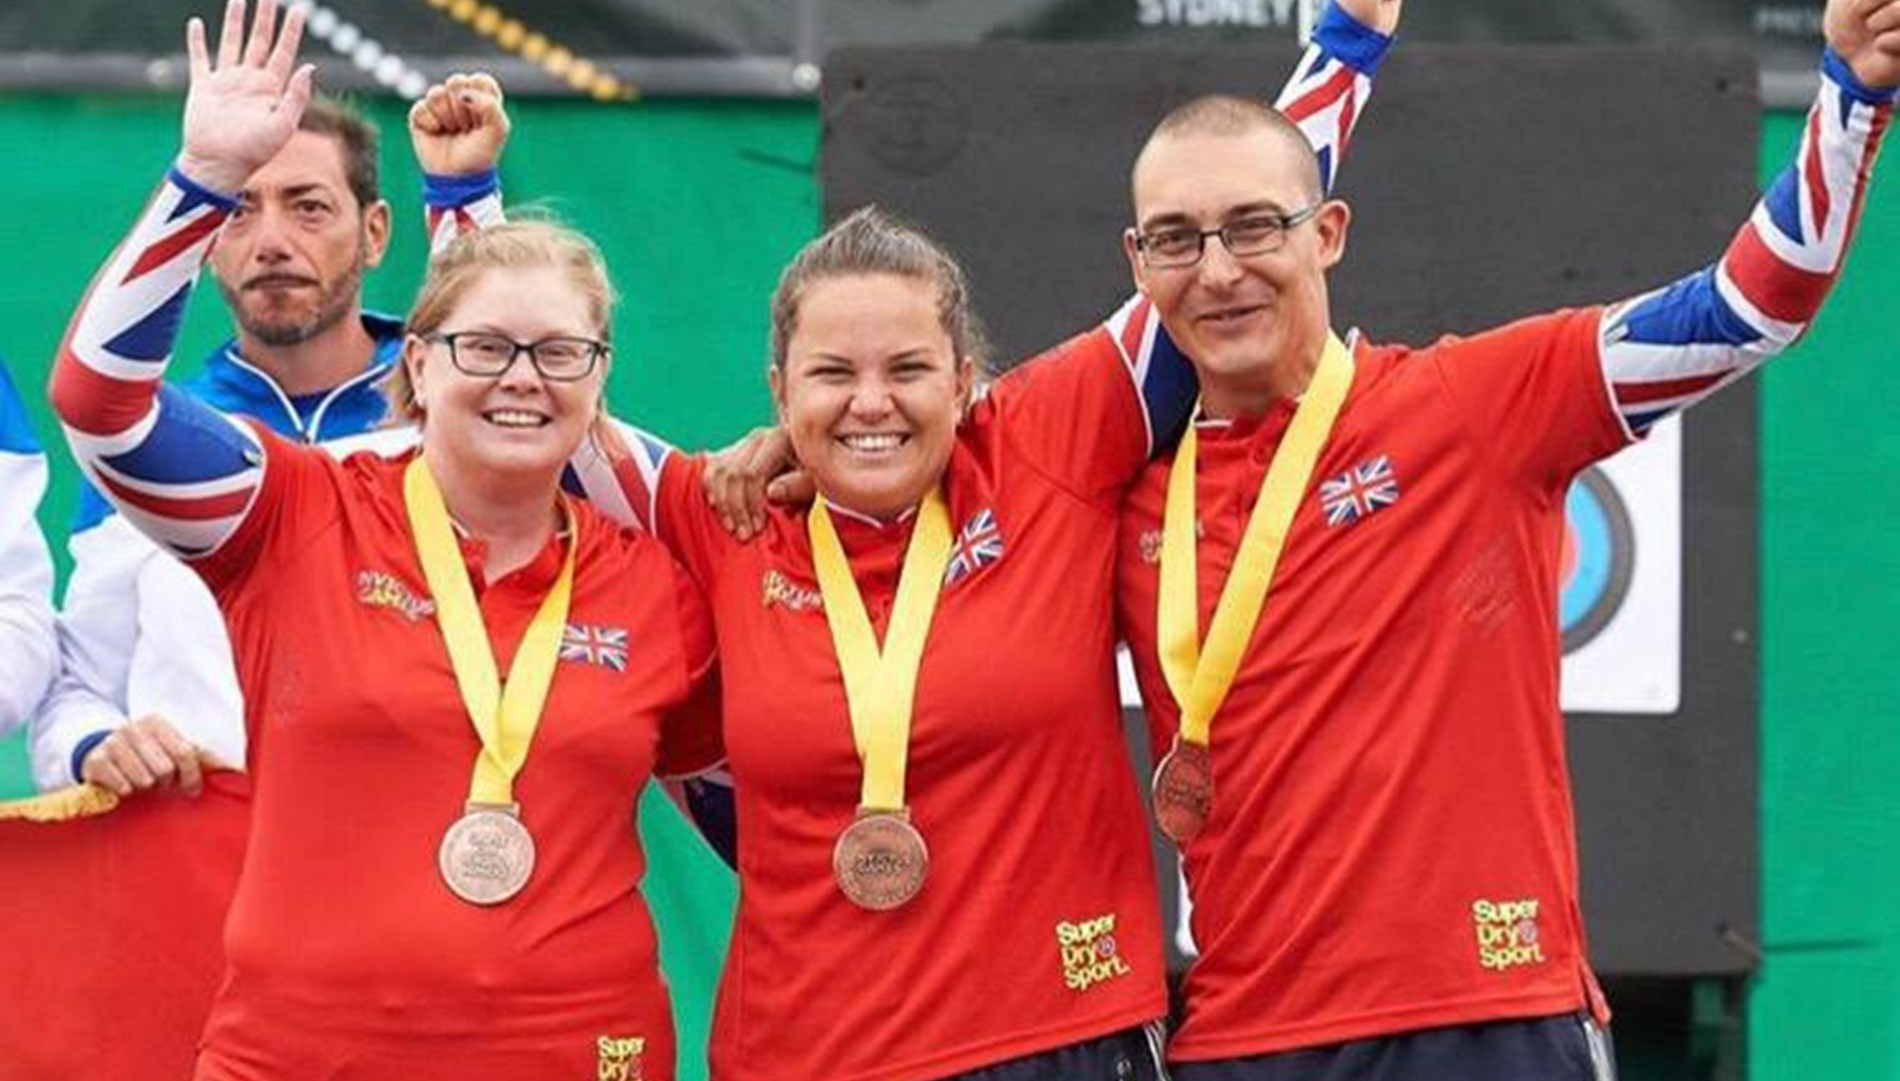 Poppy at a medal ceremony during the Invictus Games